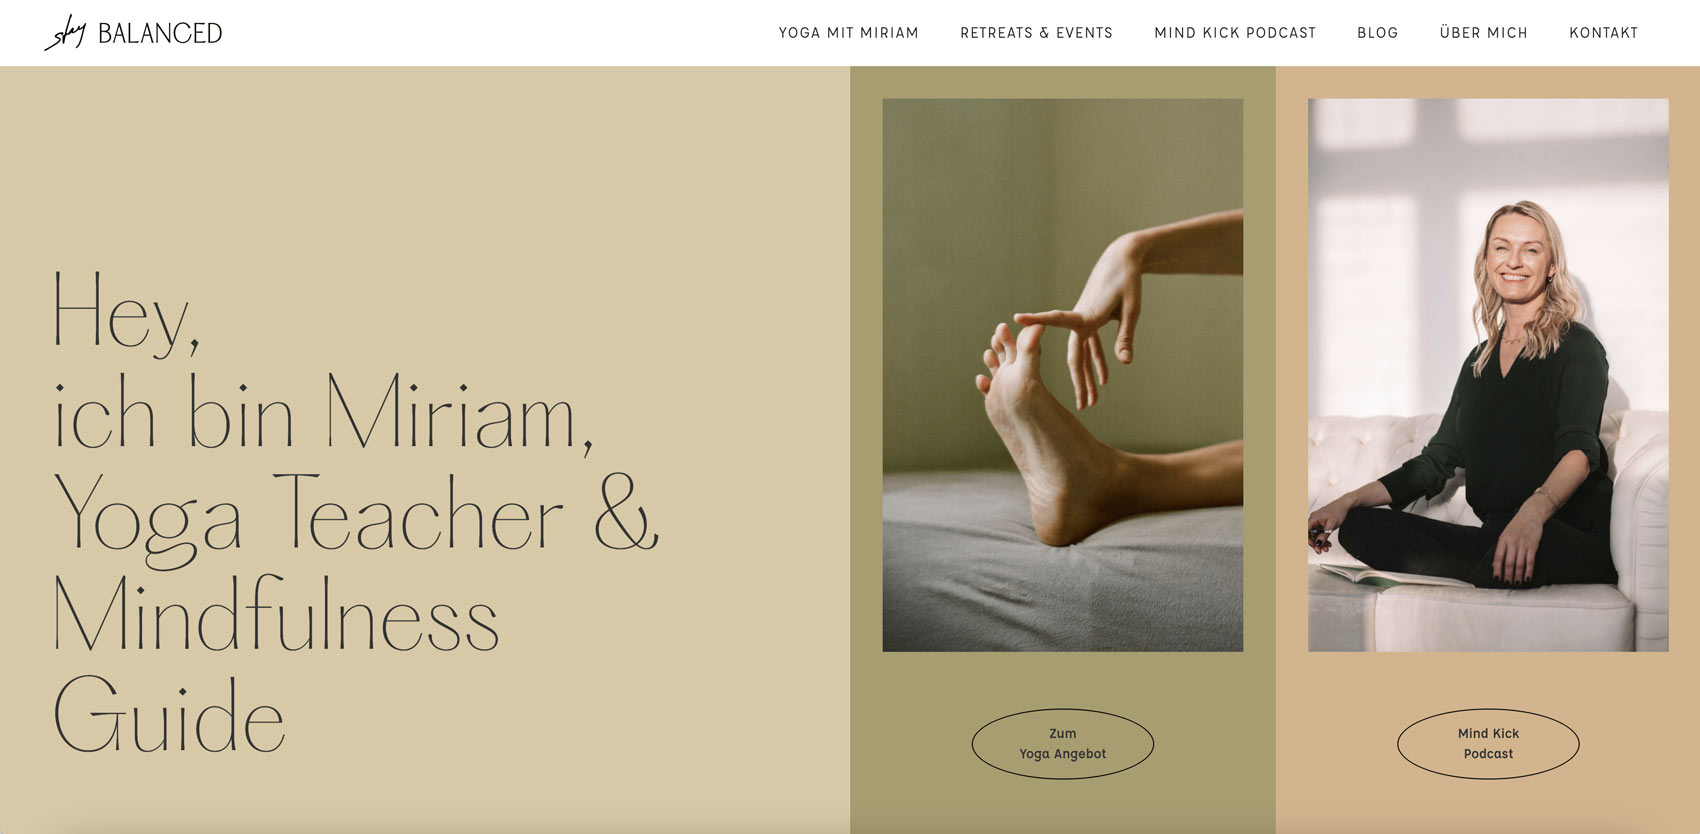 website redesign for a mindfulness coach by Alexandra Linortner